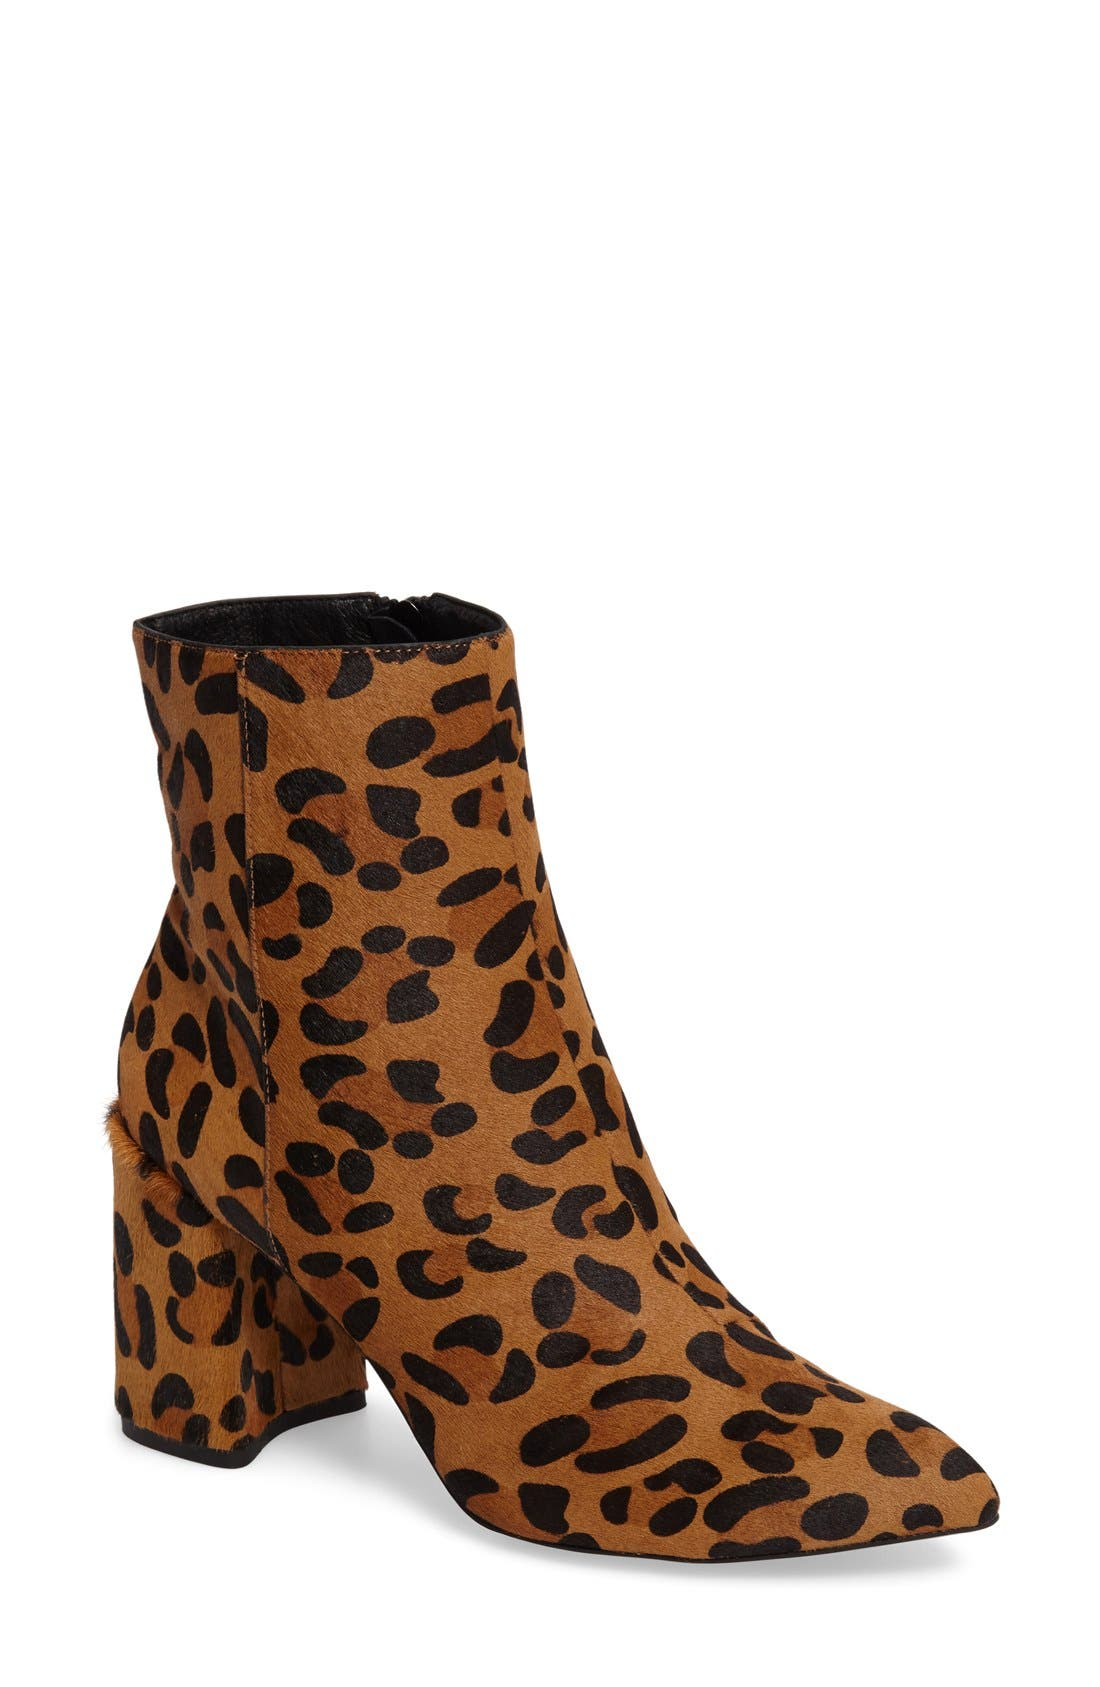 Alternate Image 1 Selected - Topshop Heart Genuine Calf Hair Boot (Women)